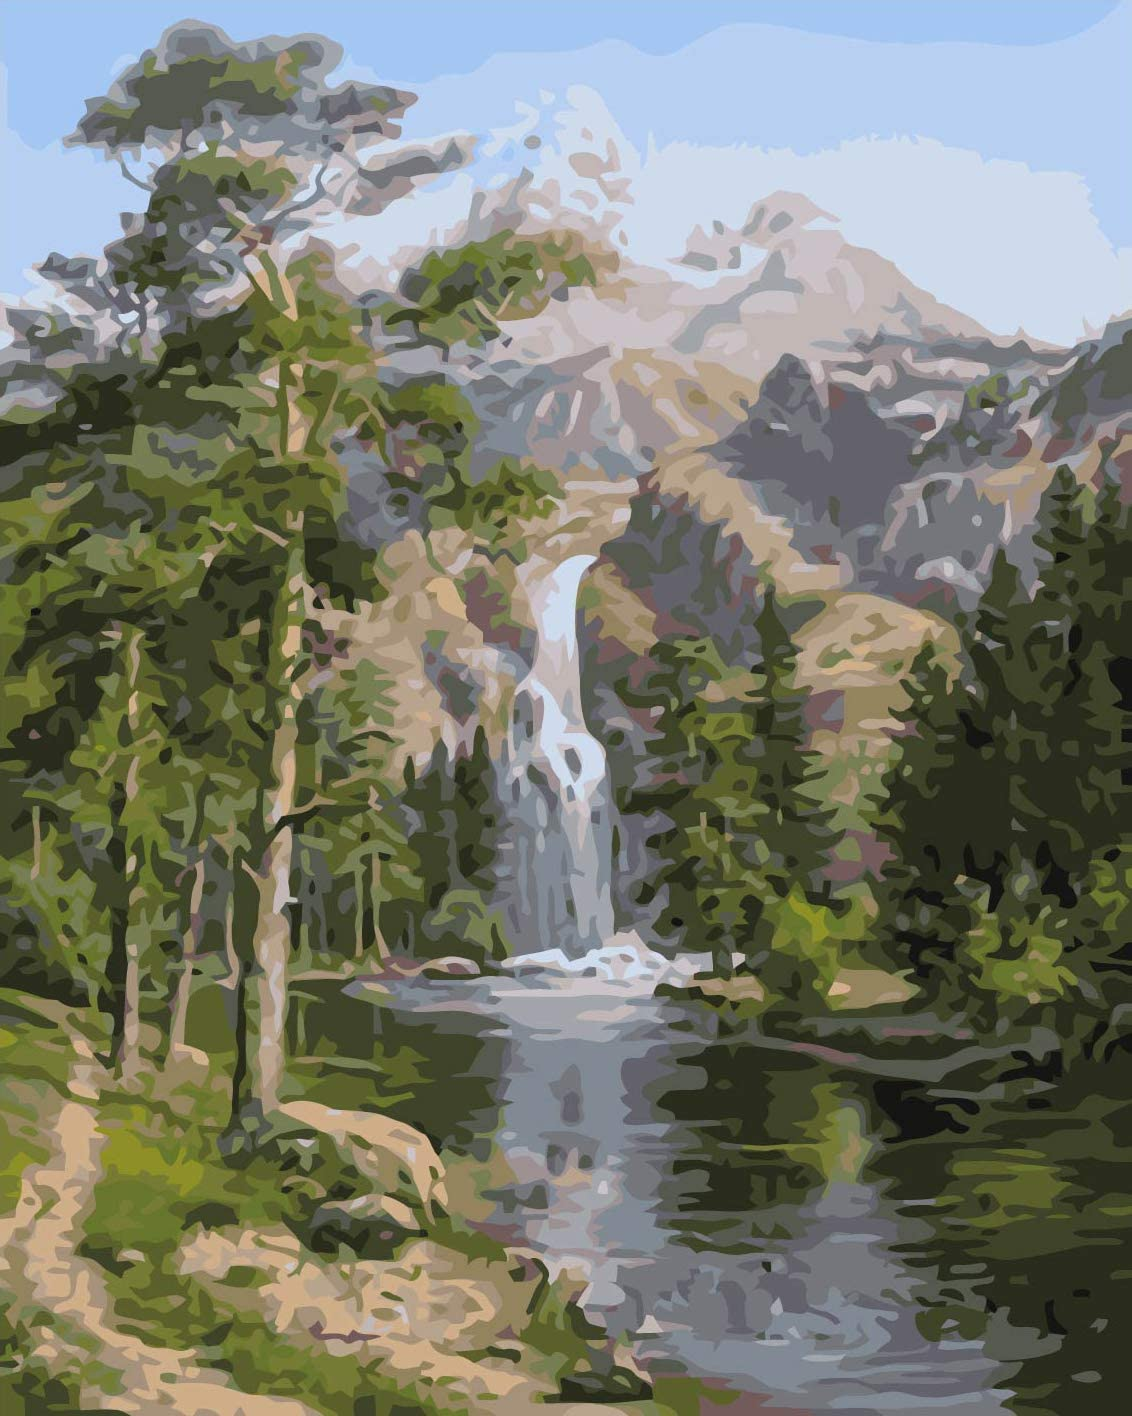 WISKALON Frameless Paint by Numbers for Adults Children - Waterfall 1620 inches Linen Canvas - DIY Painting by Numbers Kits on Canvas